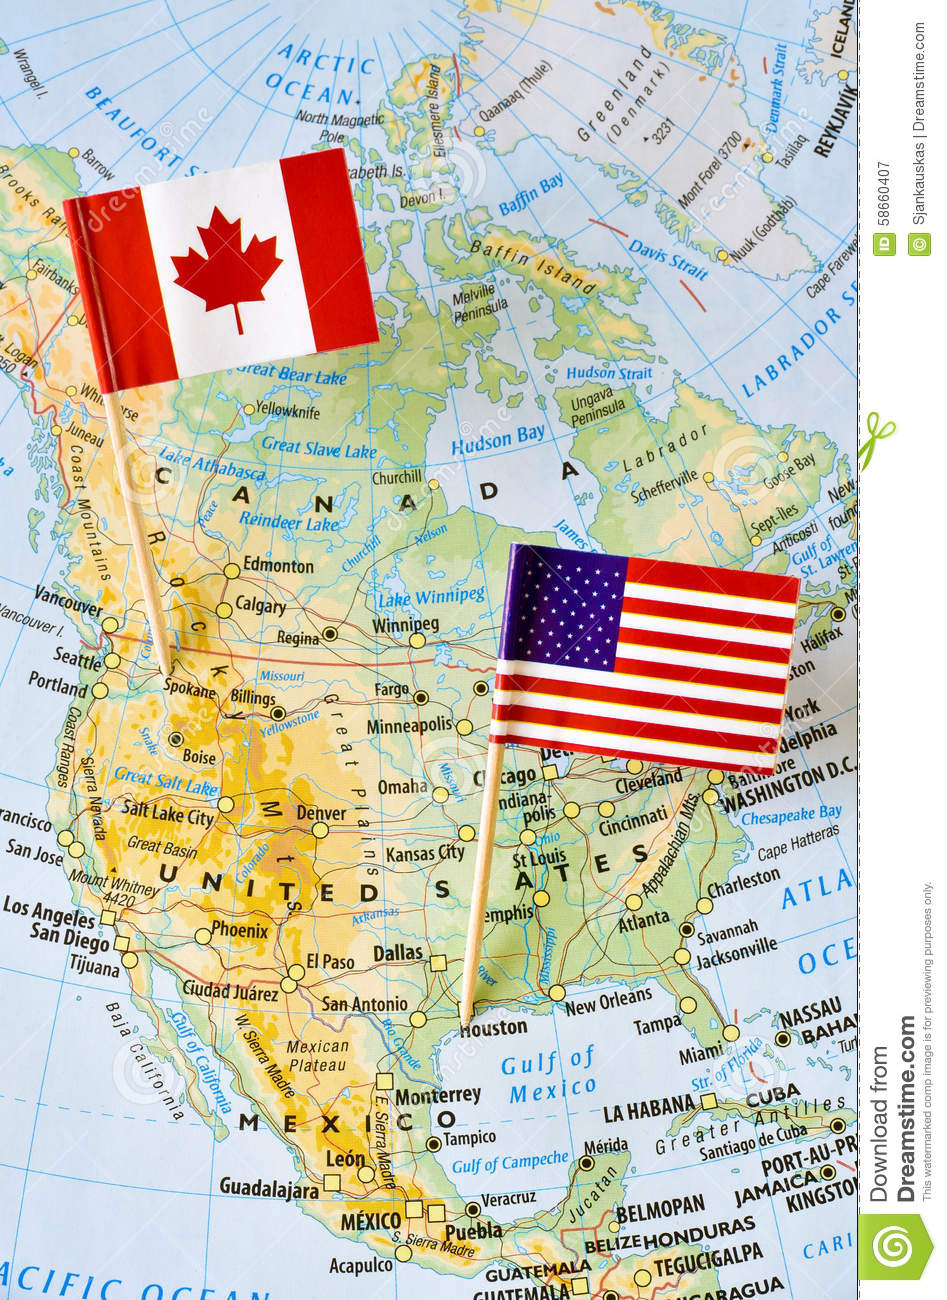 Canada And USA Flag Pin On Map Stock Image - Image of grid ...